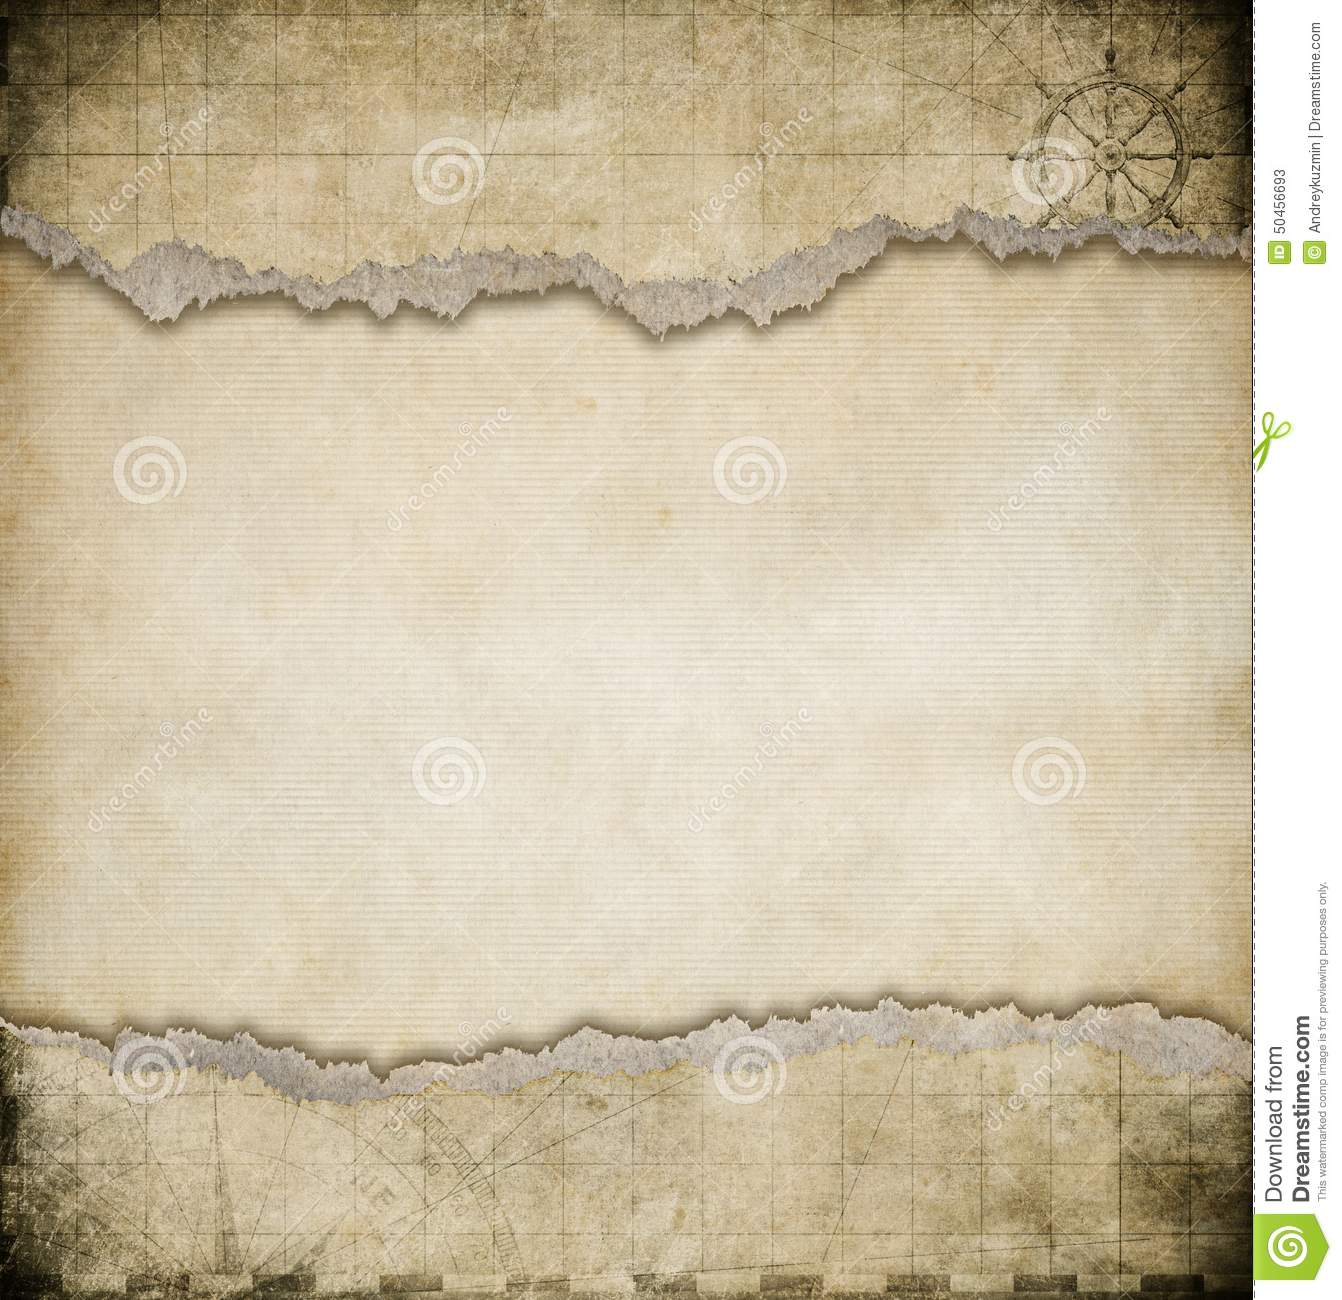 Old torn paper vintage map background stock photo image 50456693